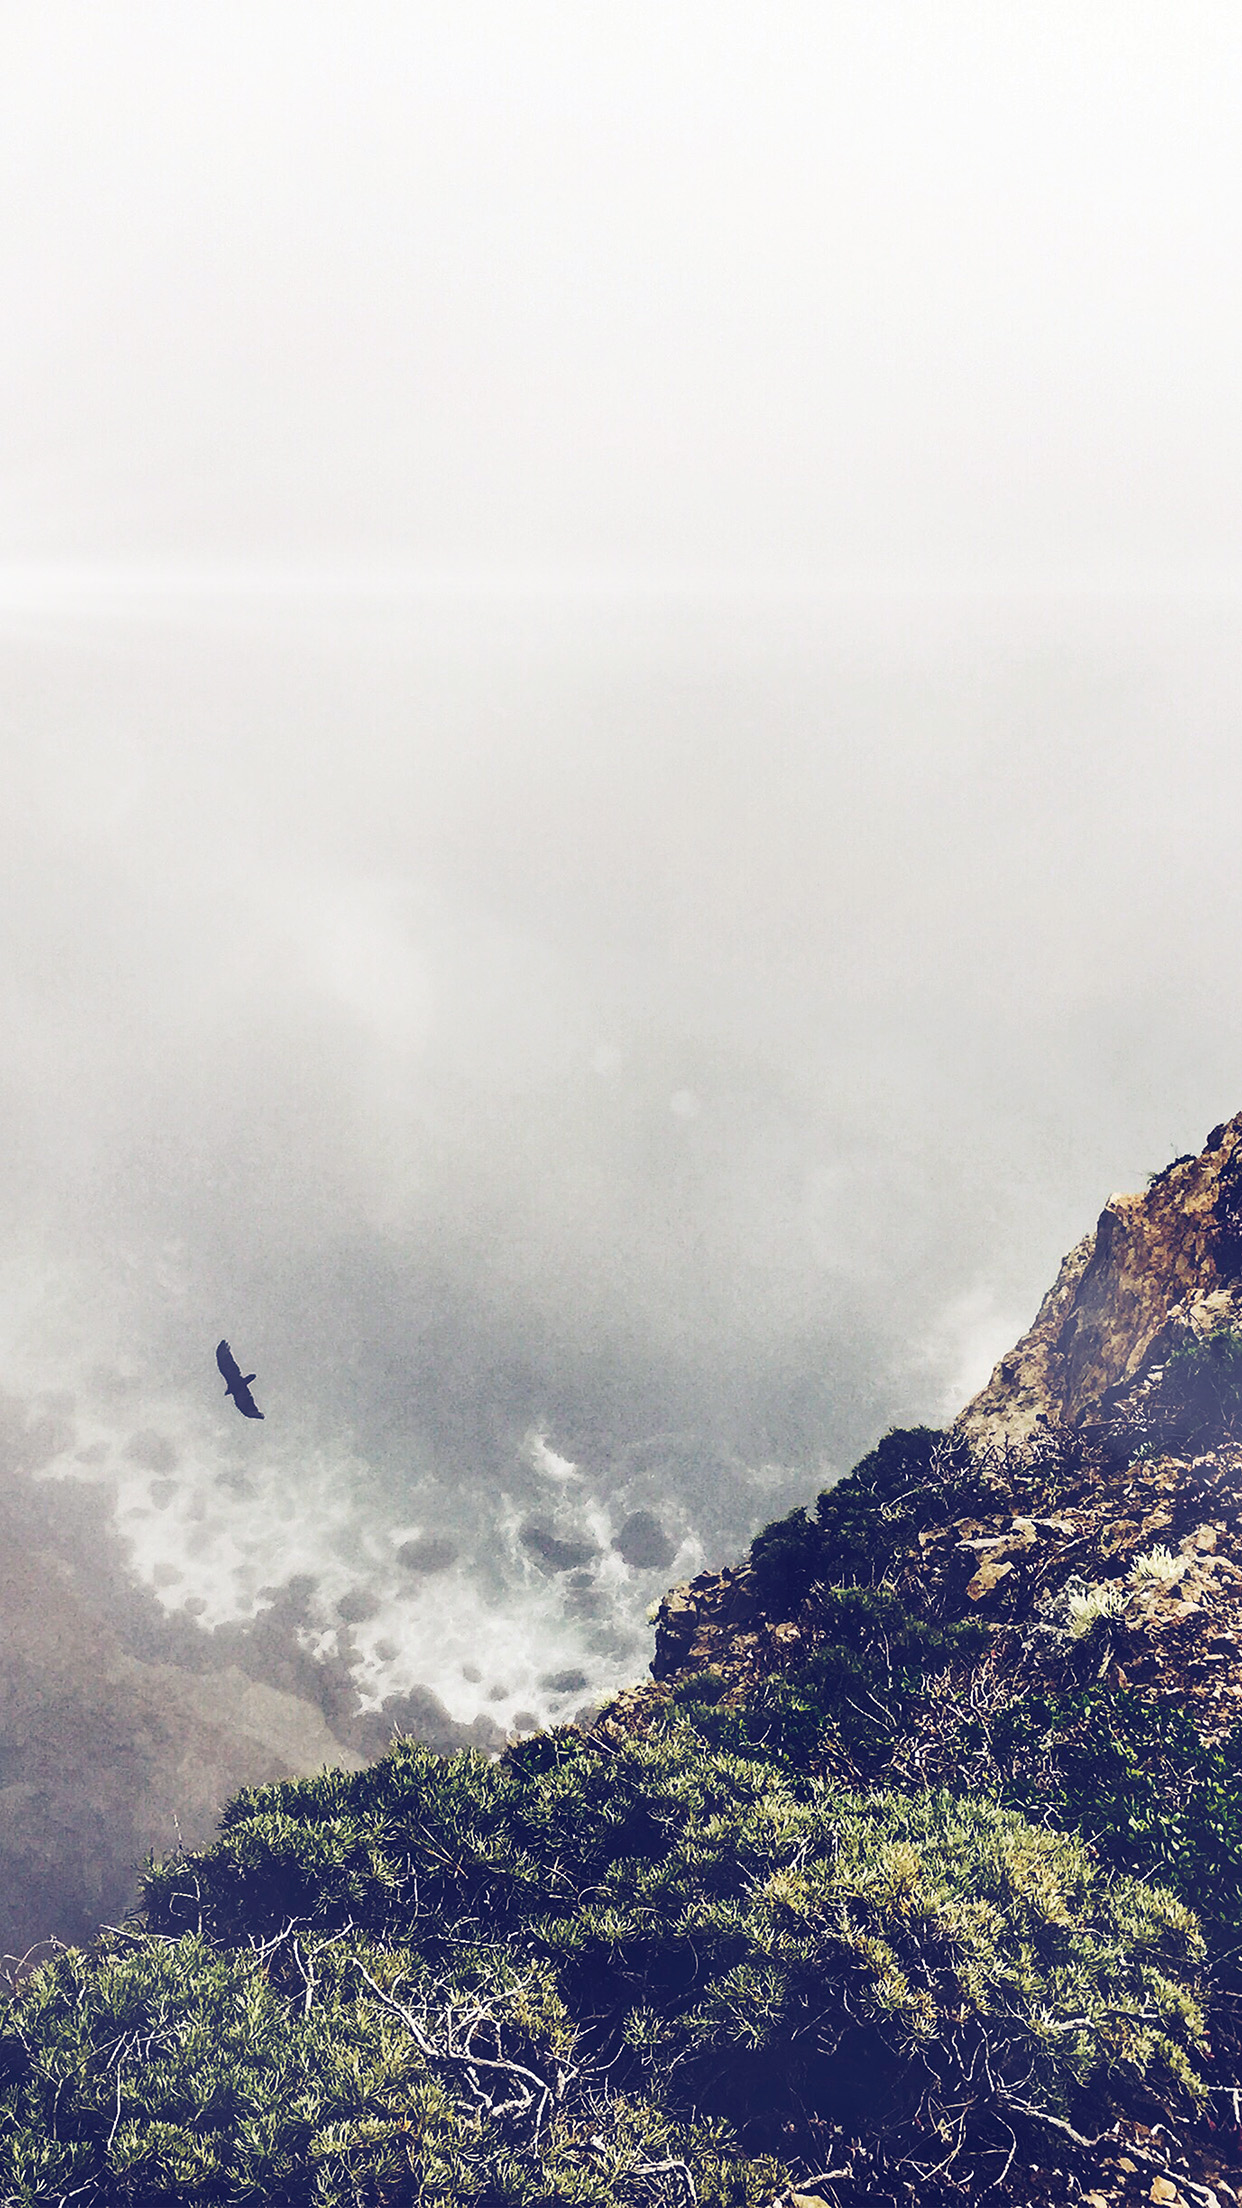 Wallpaper Images With Quotes Mountain Bird Cliff Animal Fog Cloud Flare Android